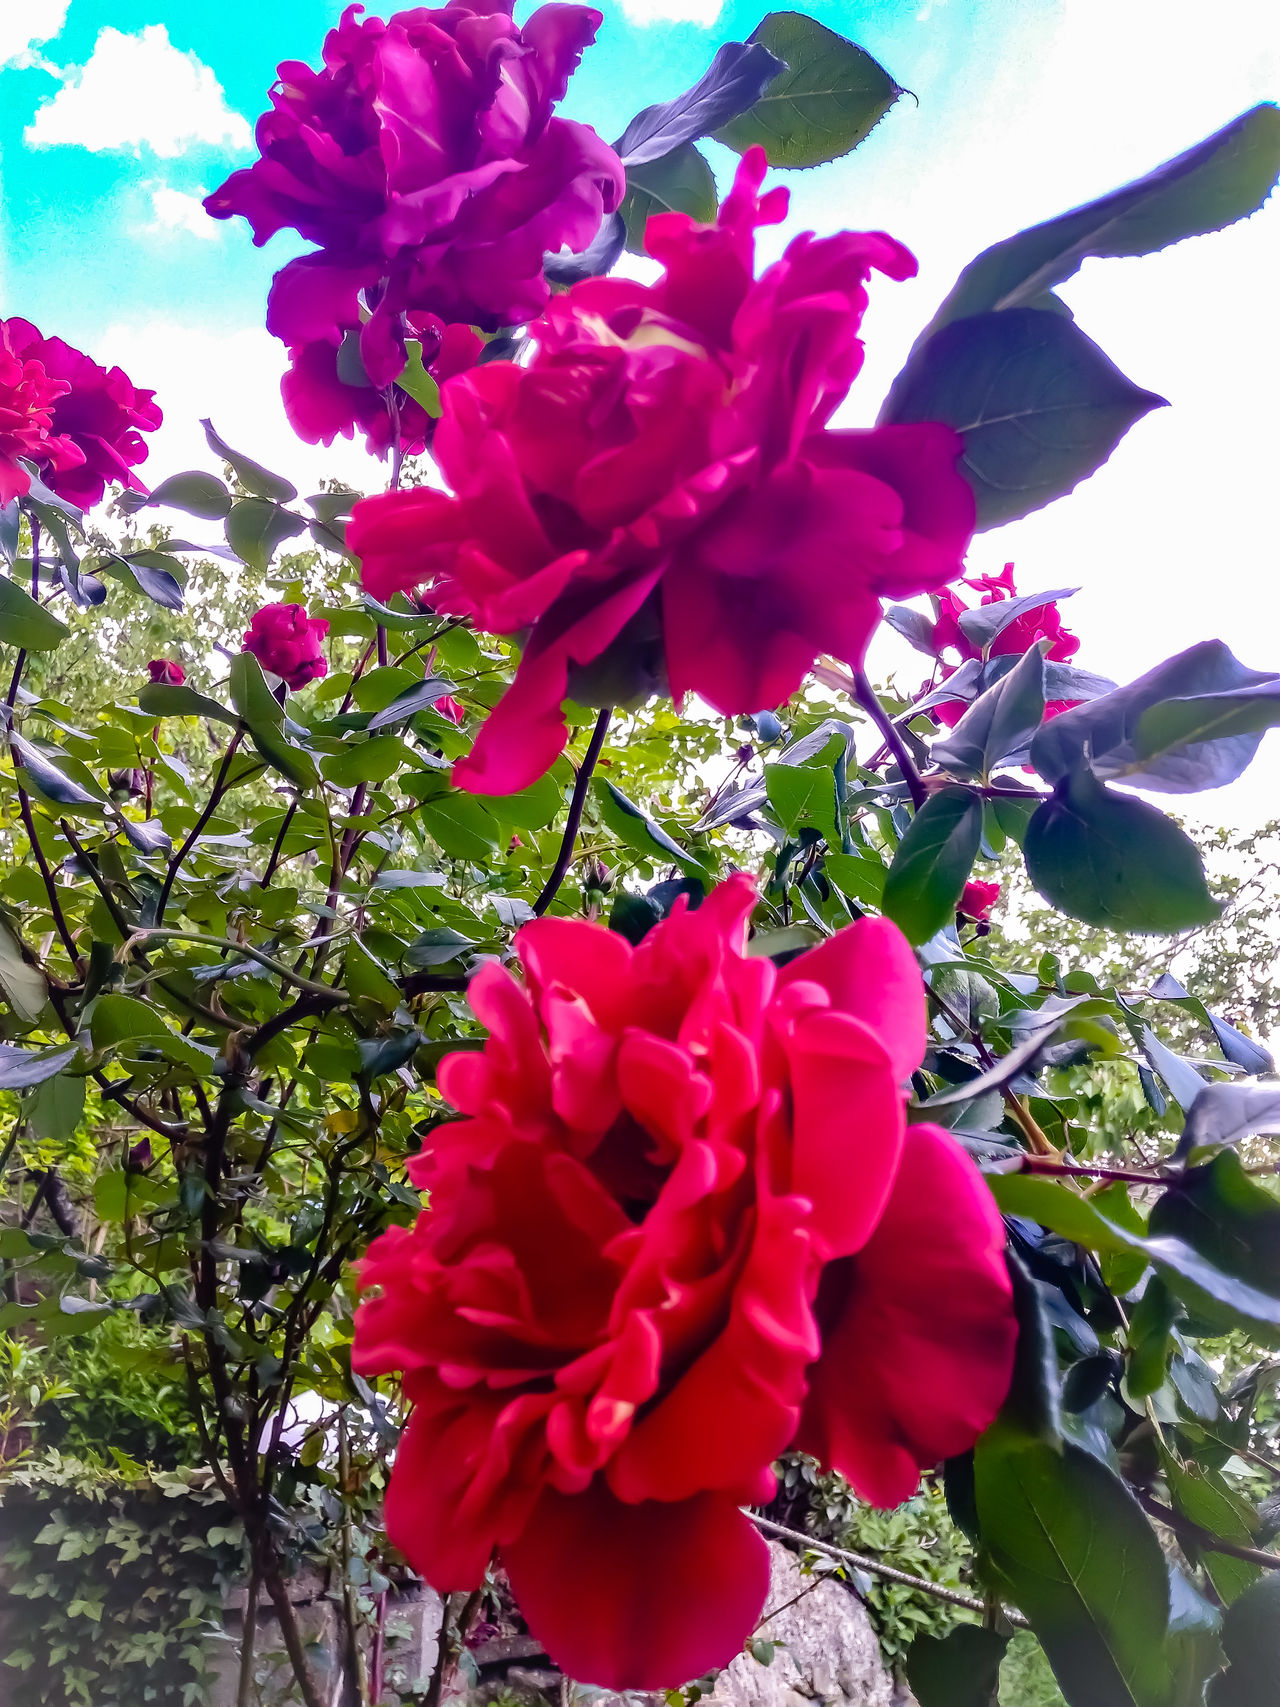 Flower Nature Petal Color Explosion Countryhouse Mygardentoday Garden Photography Roses Rose - Flower Springtime My Garden @my Home Huaweiphotography Beauty In Nature